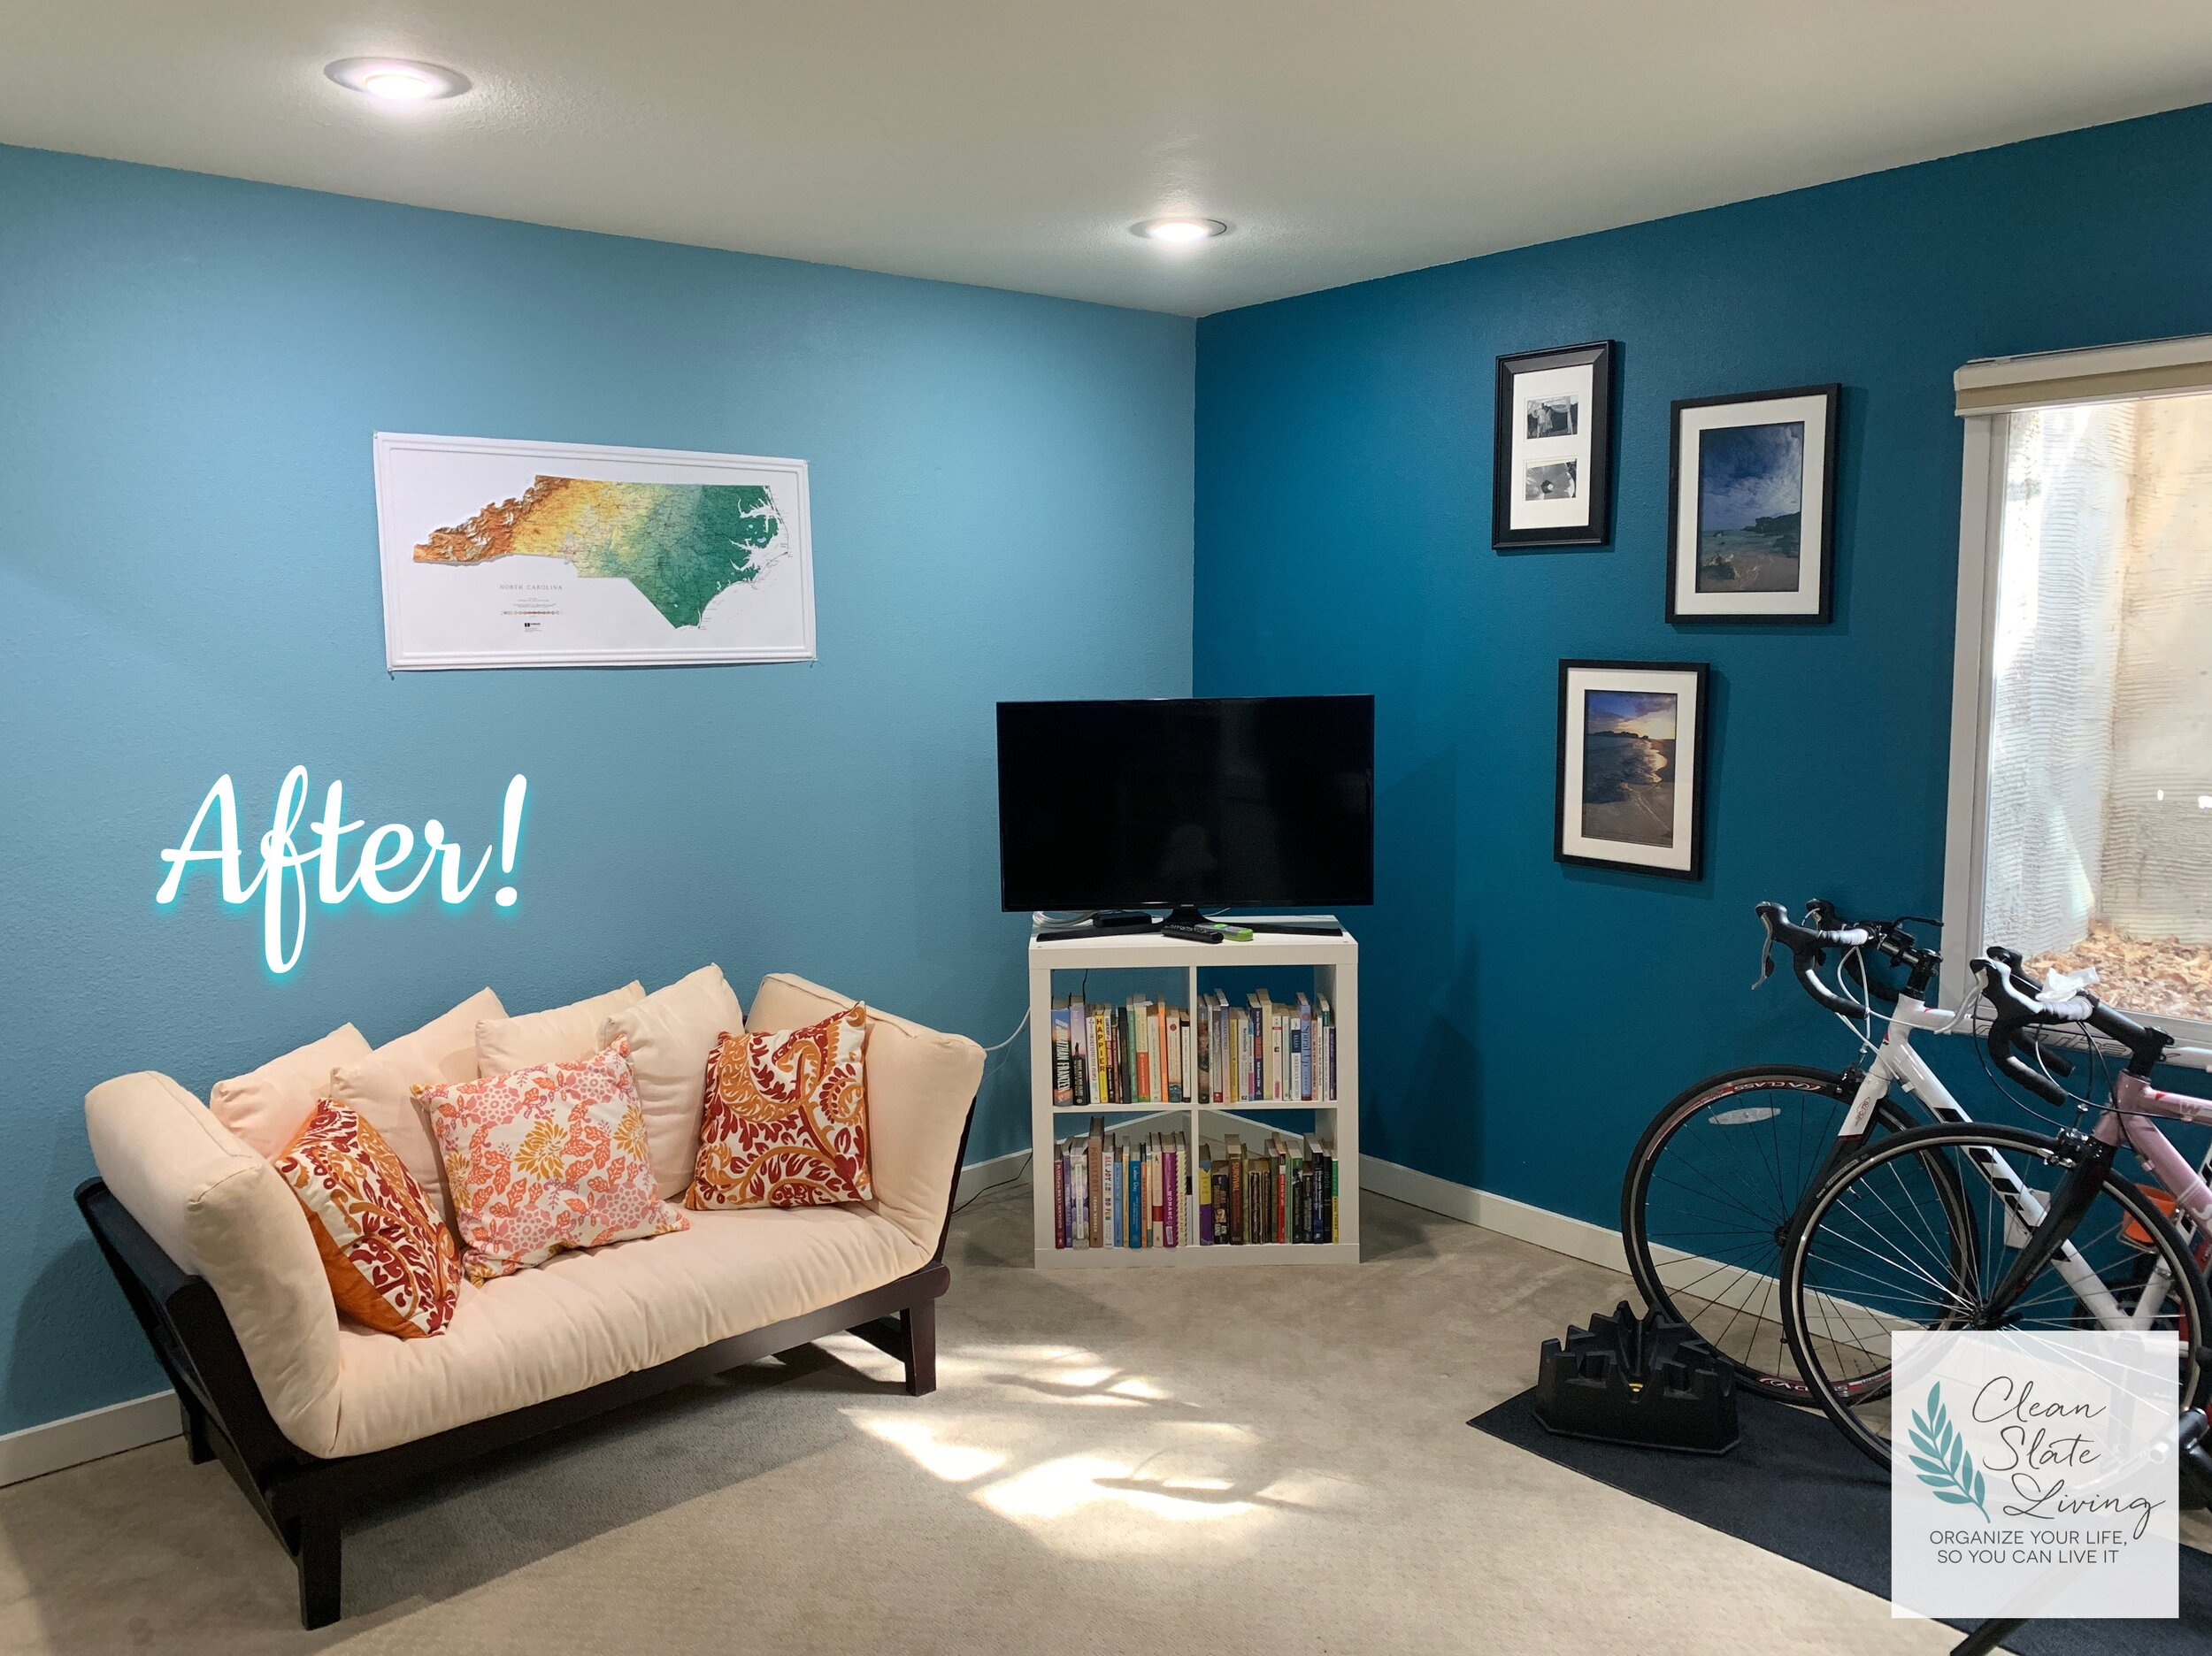 """Working It Out, Boulder, CO - This is one of my most favorite transformations to date! When my client saw the finished product, she was almost speechless. She said, """"Wow! I didn't realize you were going to transform this room. I just thought you were going to organize it!"""" So much of the time, the two go hand in hand😉 Now, the office/exercise room is exactly that - a welcoming place to work, AND workout!"""